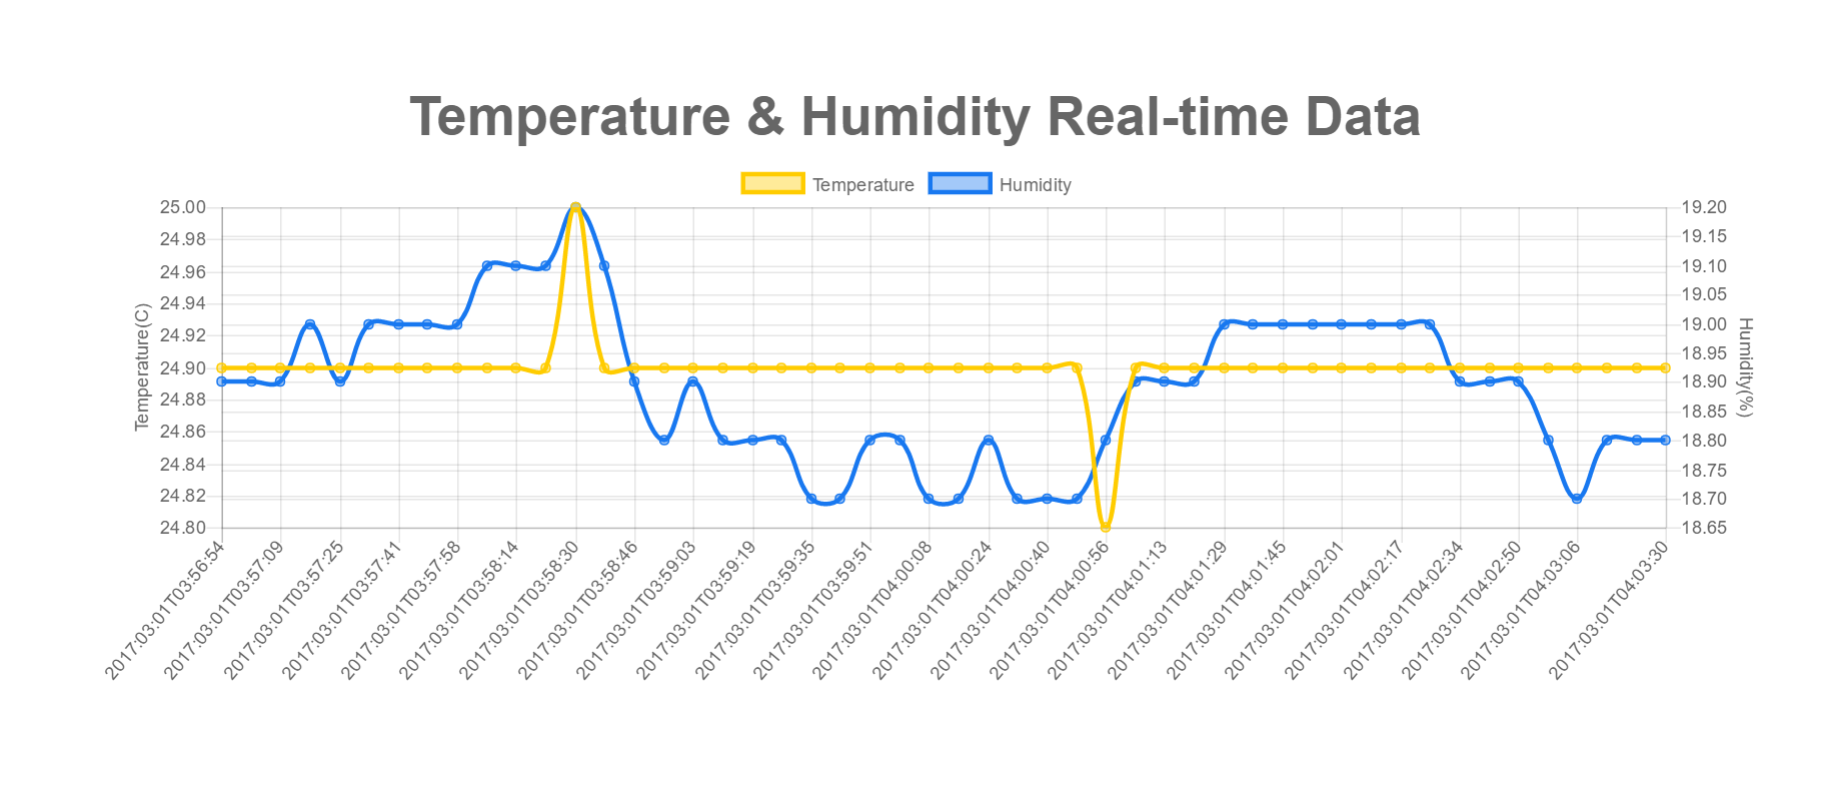 Web app page showing real-time temperature and humidity